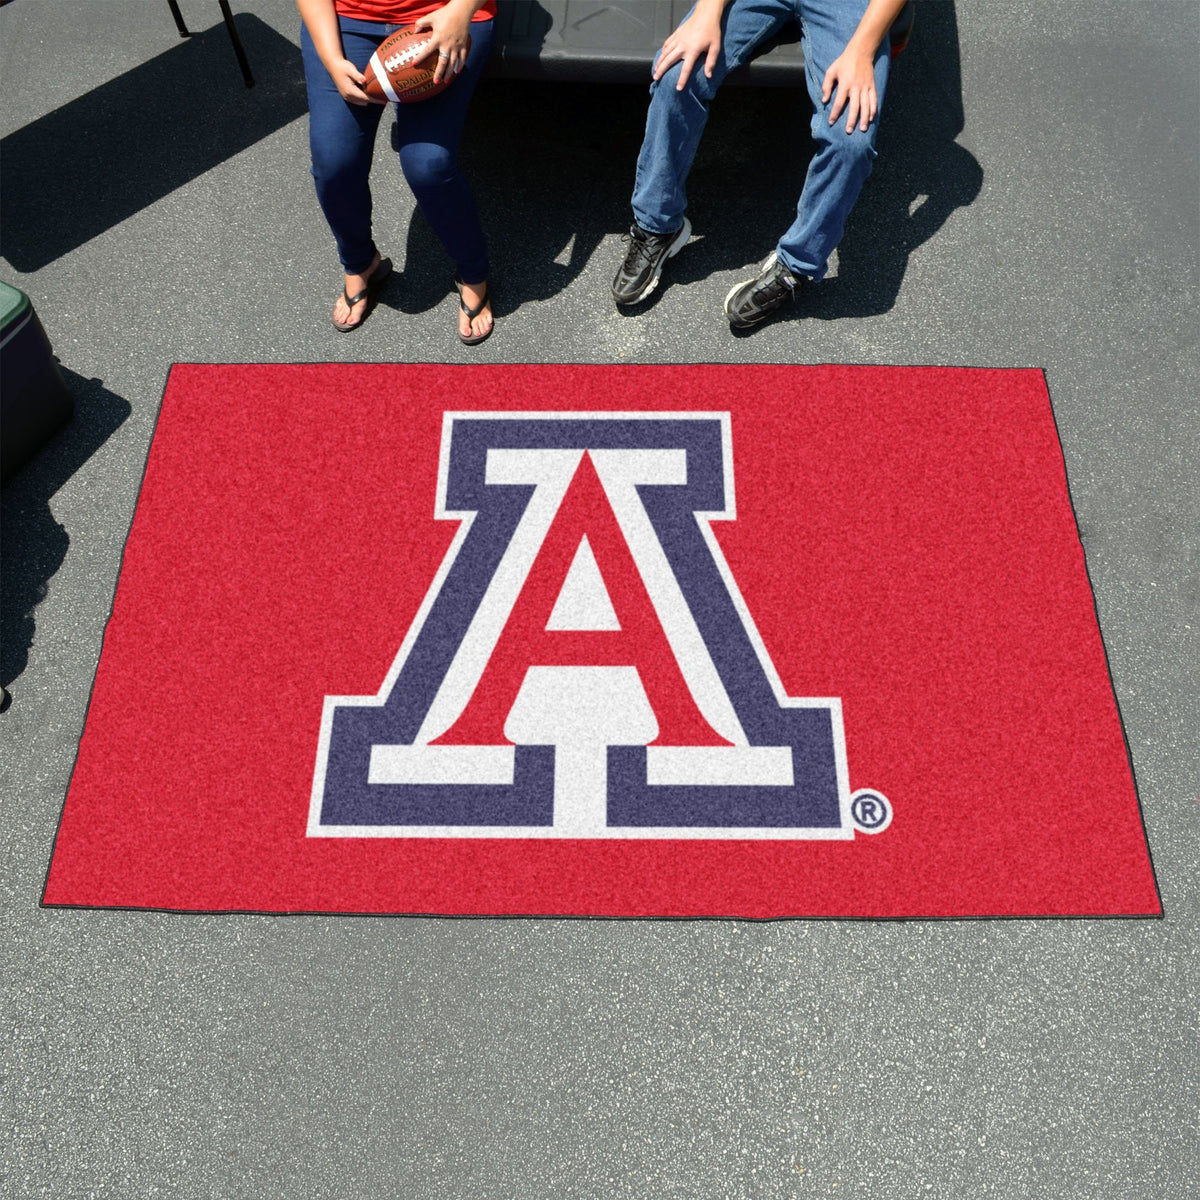 Collegiate - Ulti-Mat: A - L Collegiate Mats, Rectangular Mats, Ulti-Mat, Collegiate, Home Fan Mats Arizona